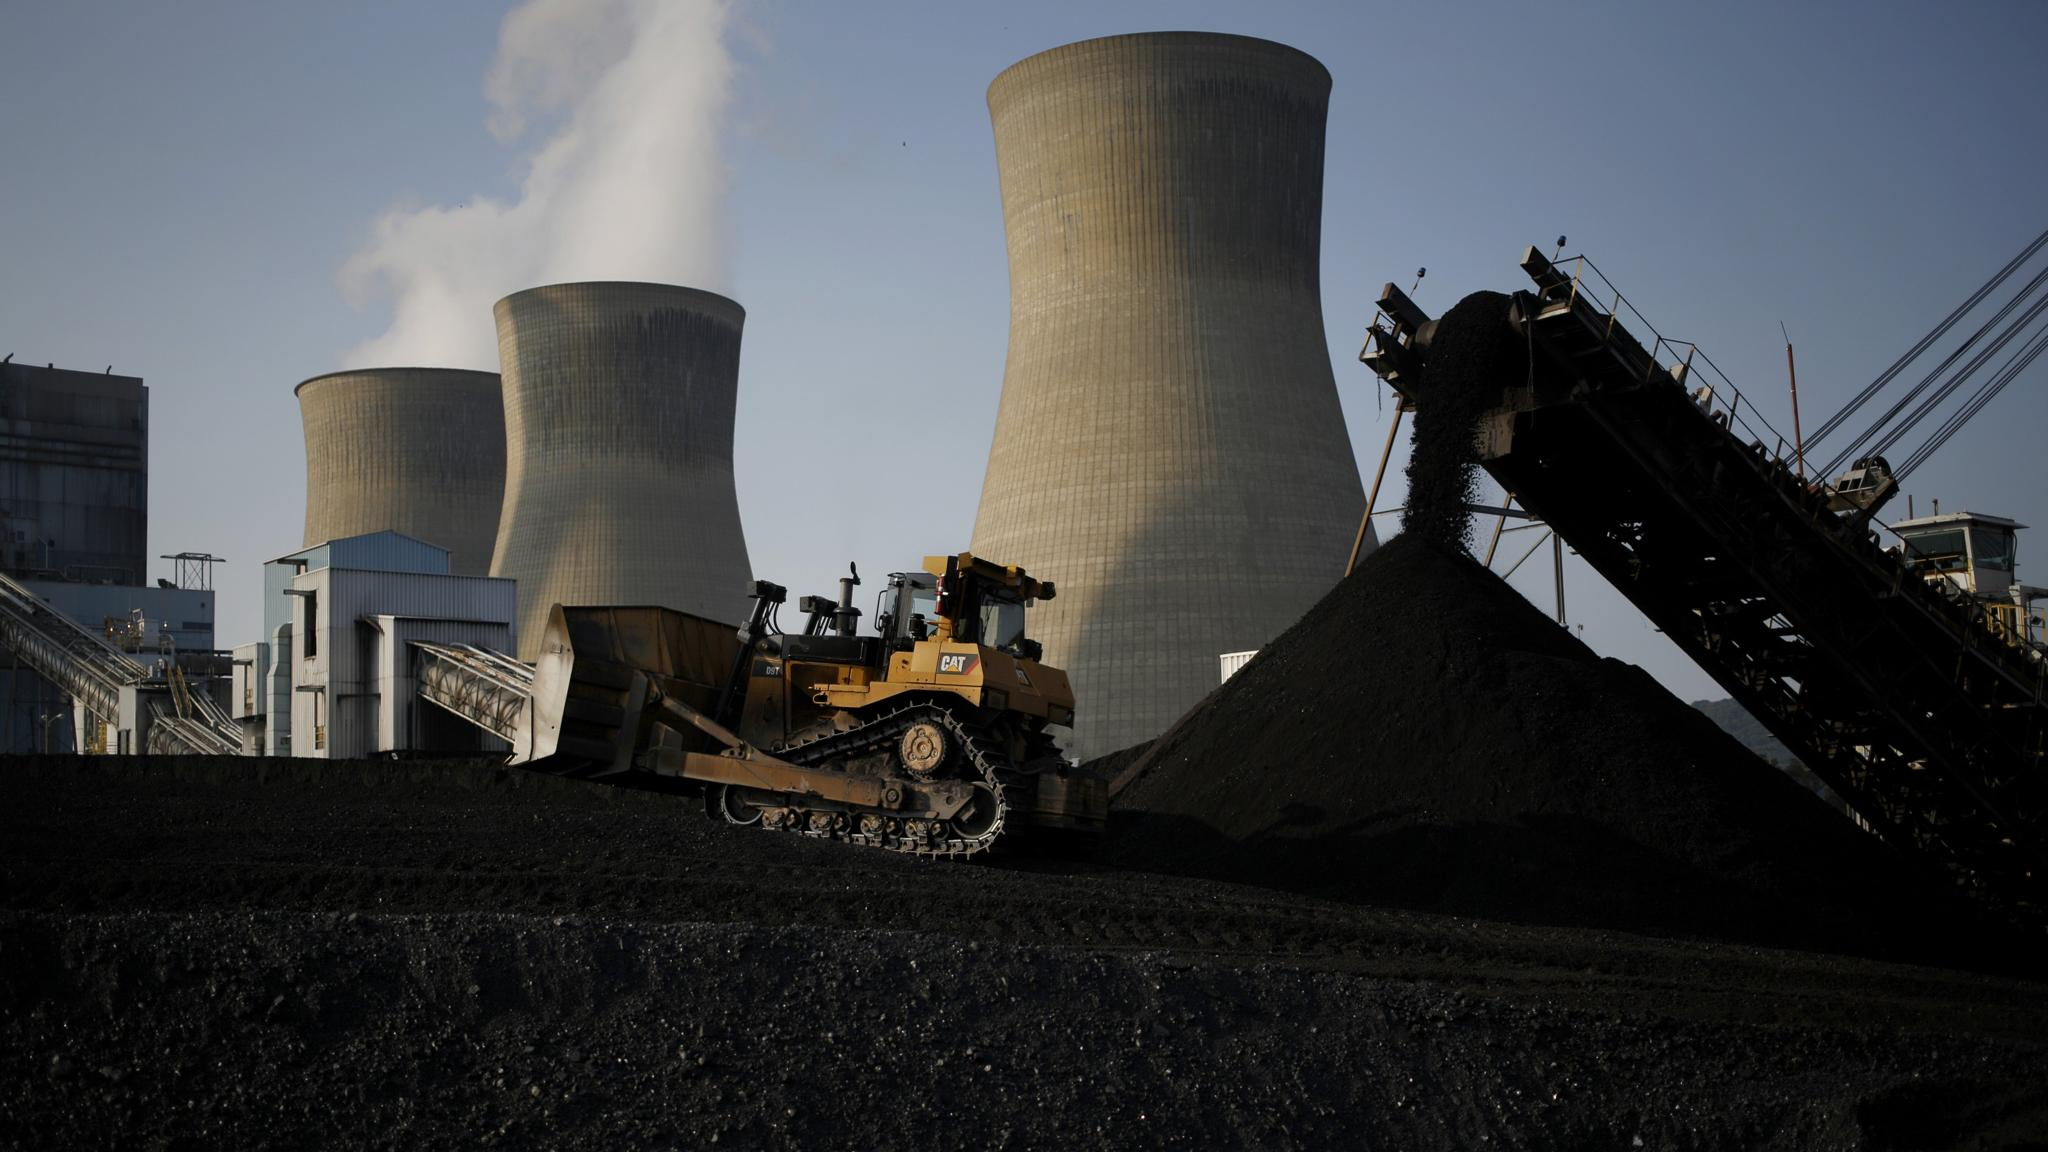 Gas Prices In West Virginia >> Us Coal Crisis Deepens As Gas Prices Fall Financial Times